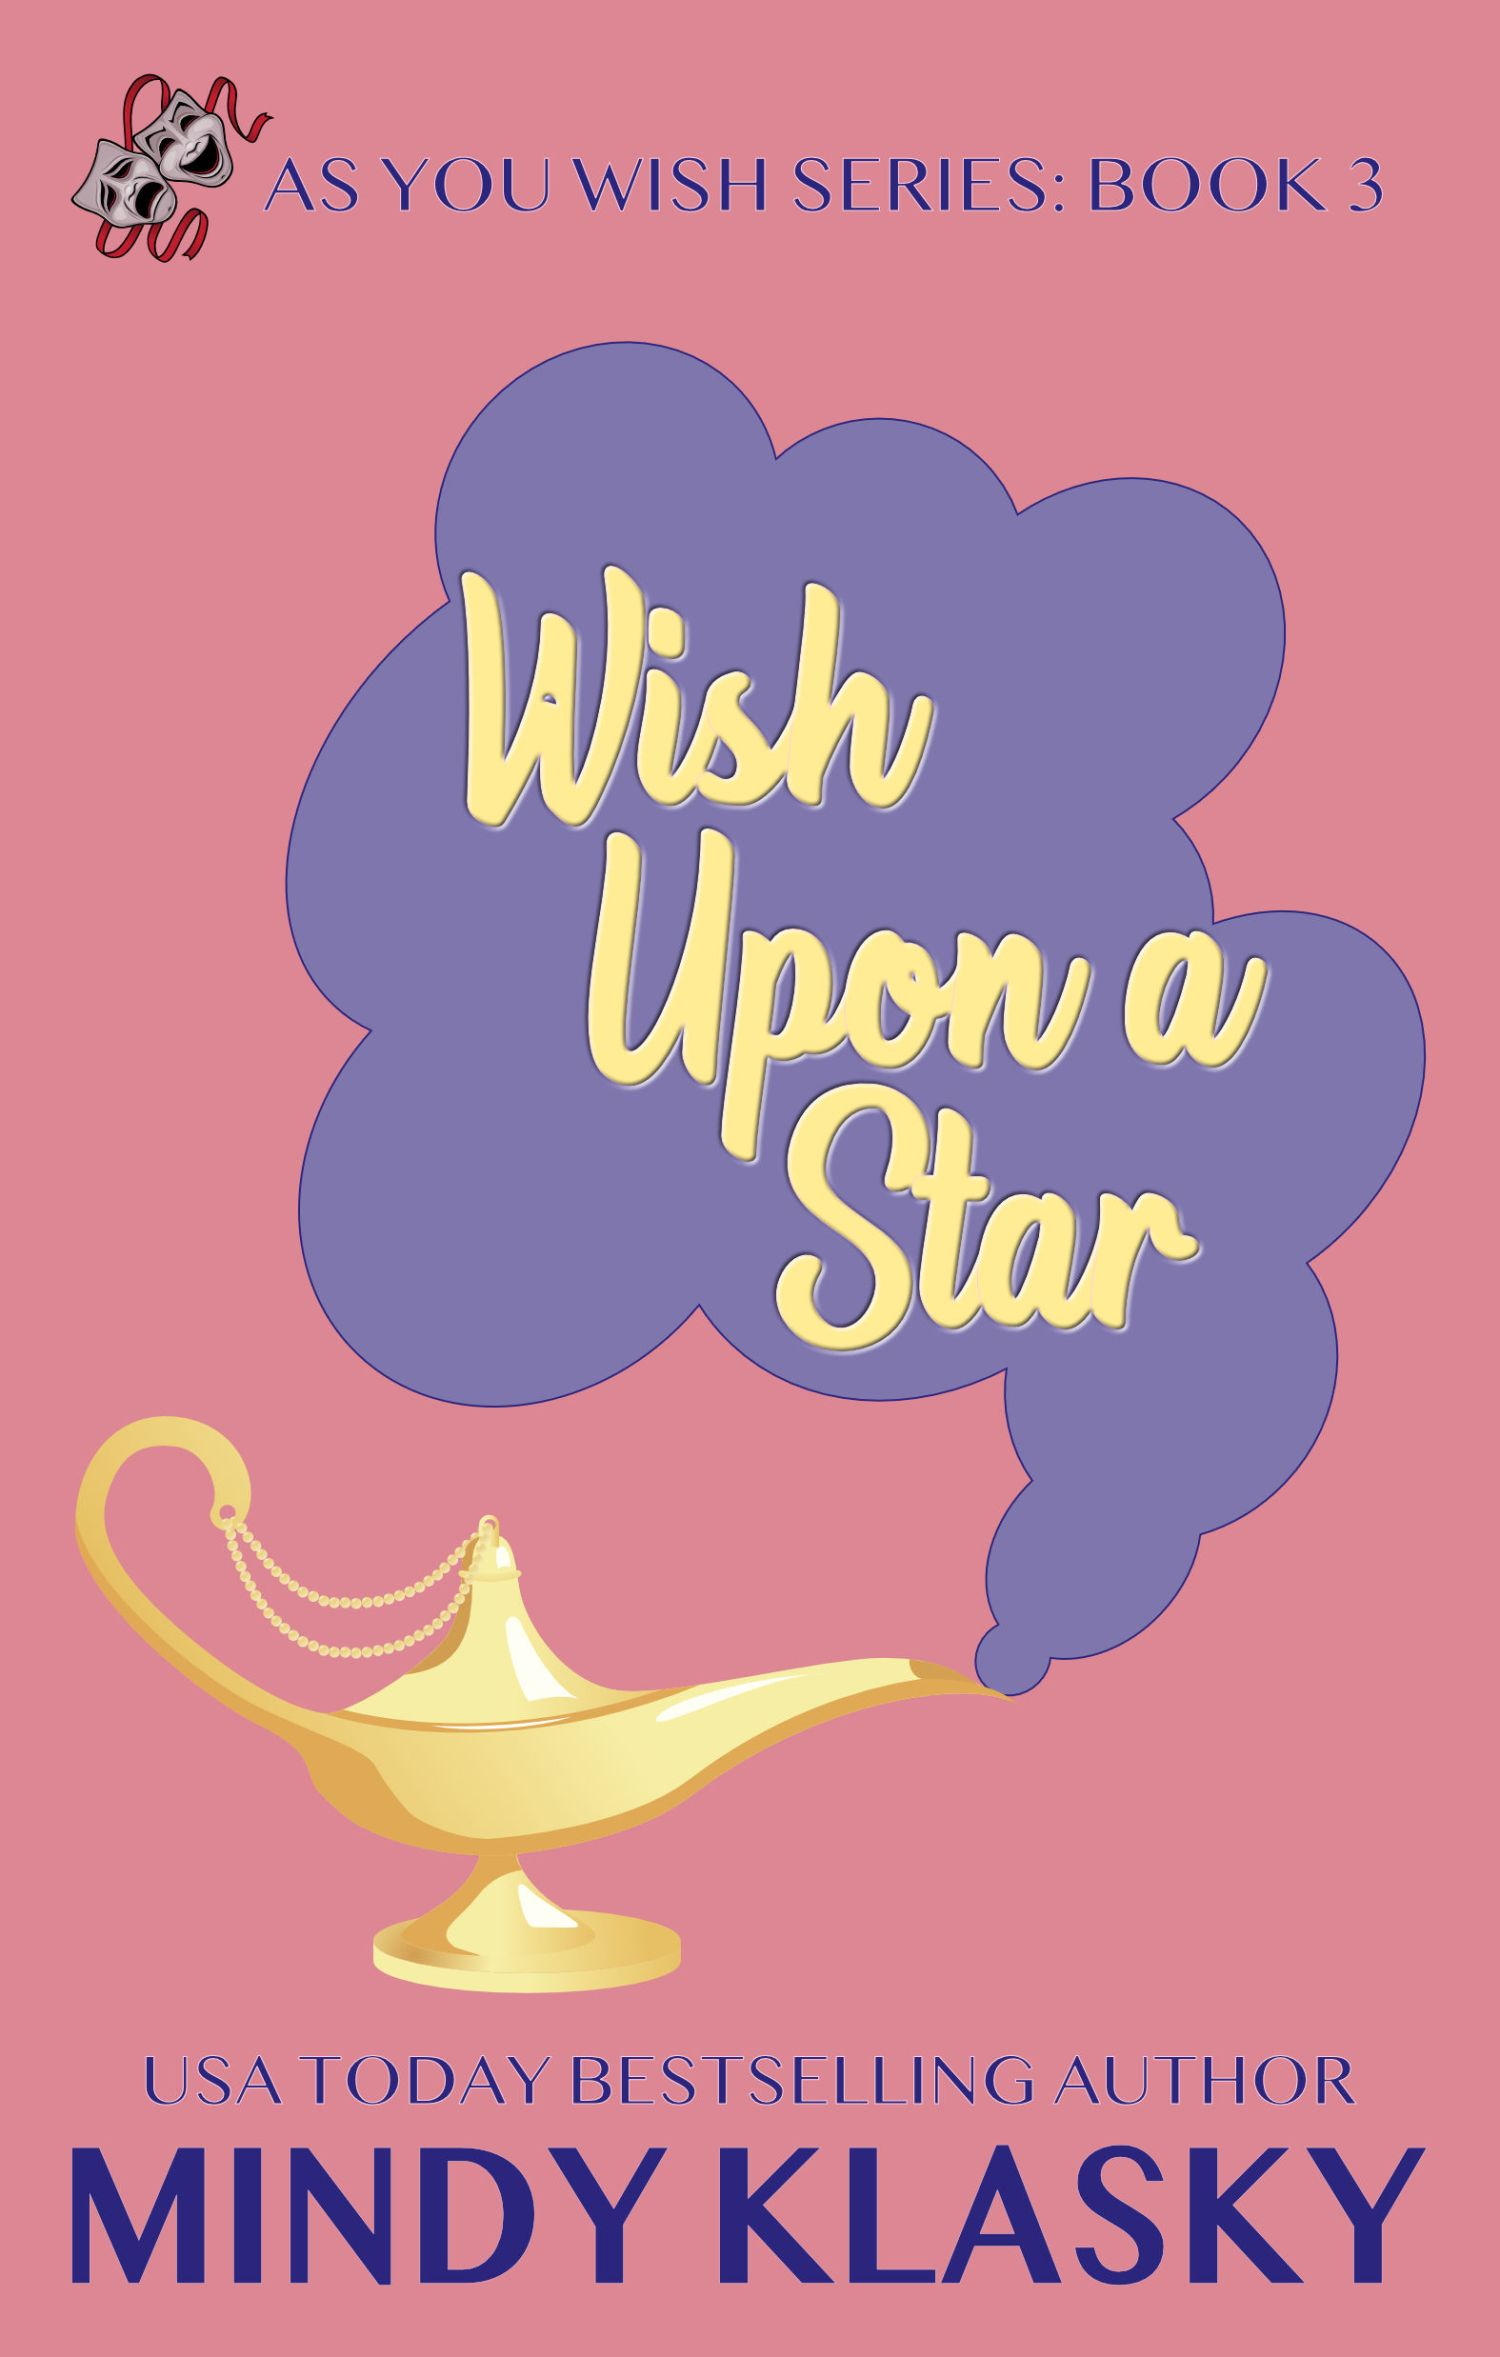 Wish Upon a Star by Mindy Klasky